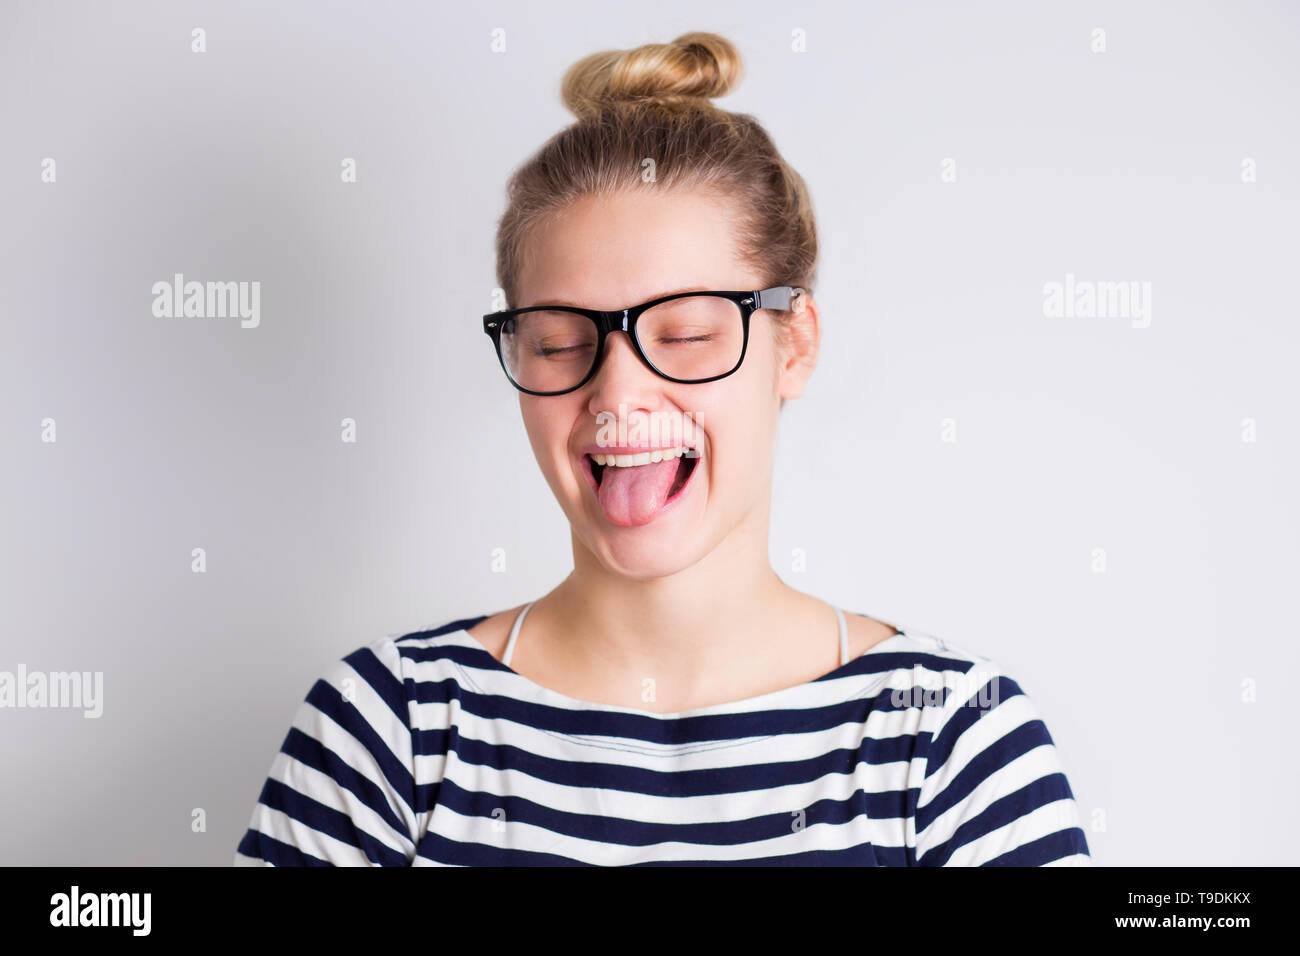 Crazy funny young blond woman in glasses showing tongue and smiling on white background. Positive emotions, facial expression, gestures concept - Stock Image